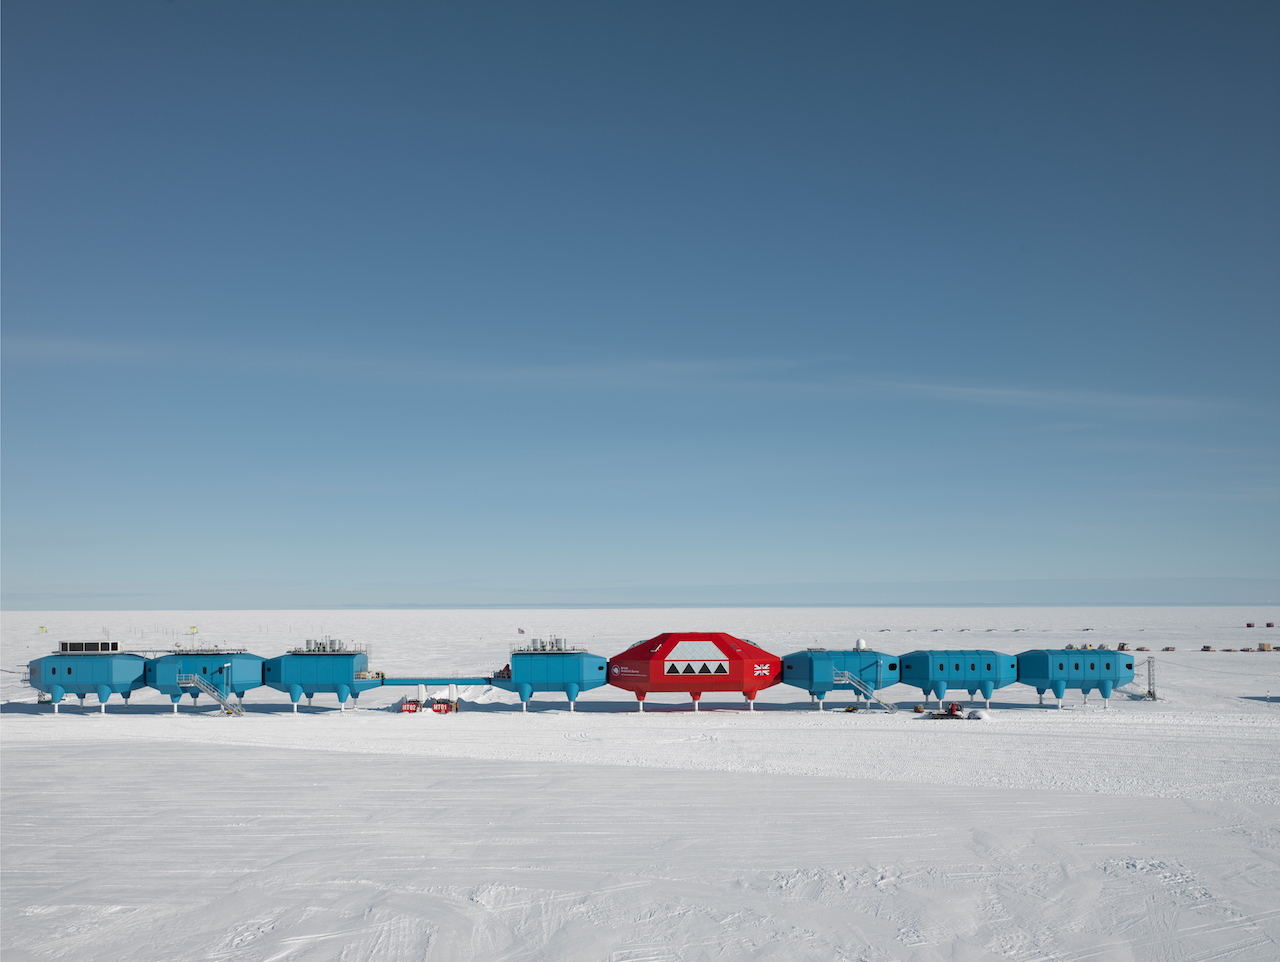 Halley VI with science modules to the left, the red social module in the centre and habitat modules to the right. (© James Morris)